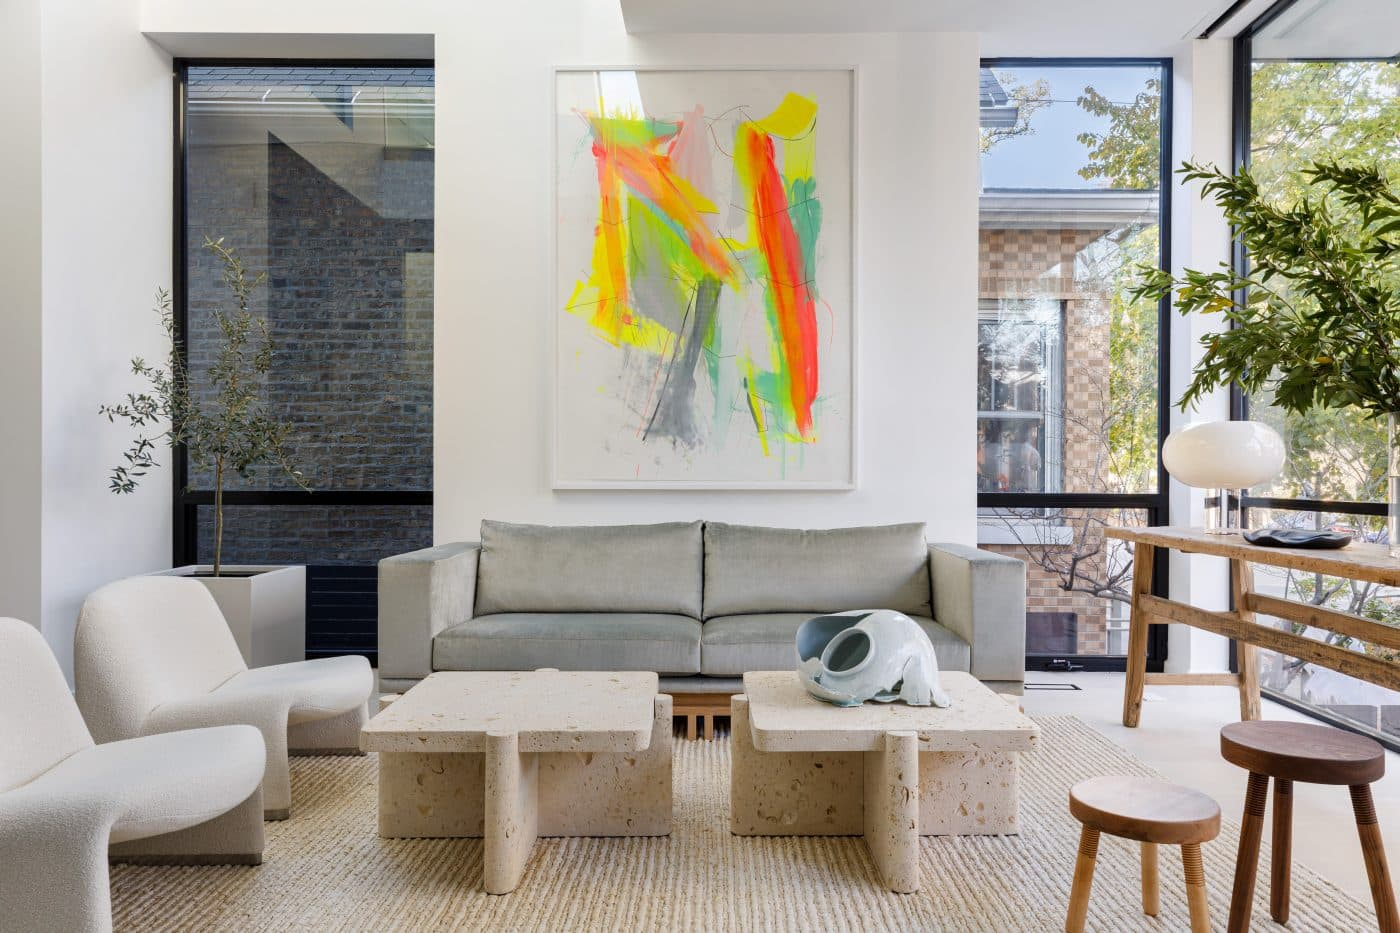 Living room of Chicago home designed by Gil Melott